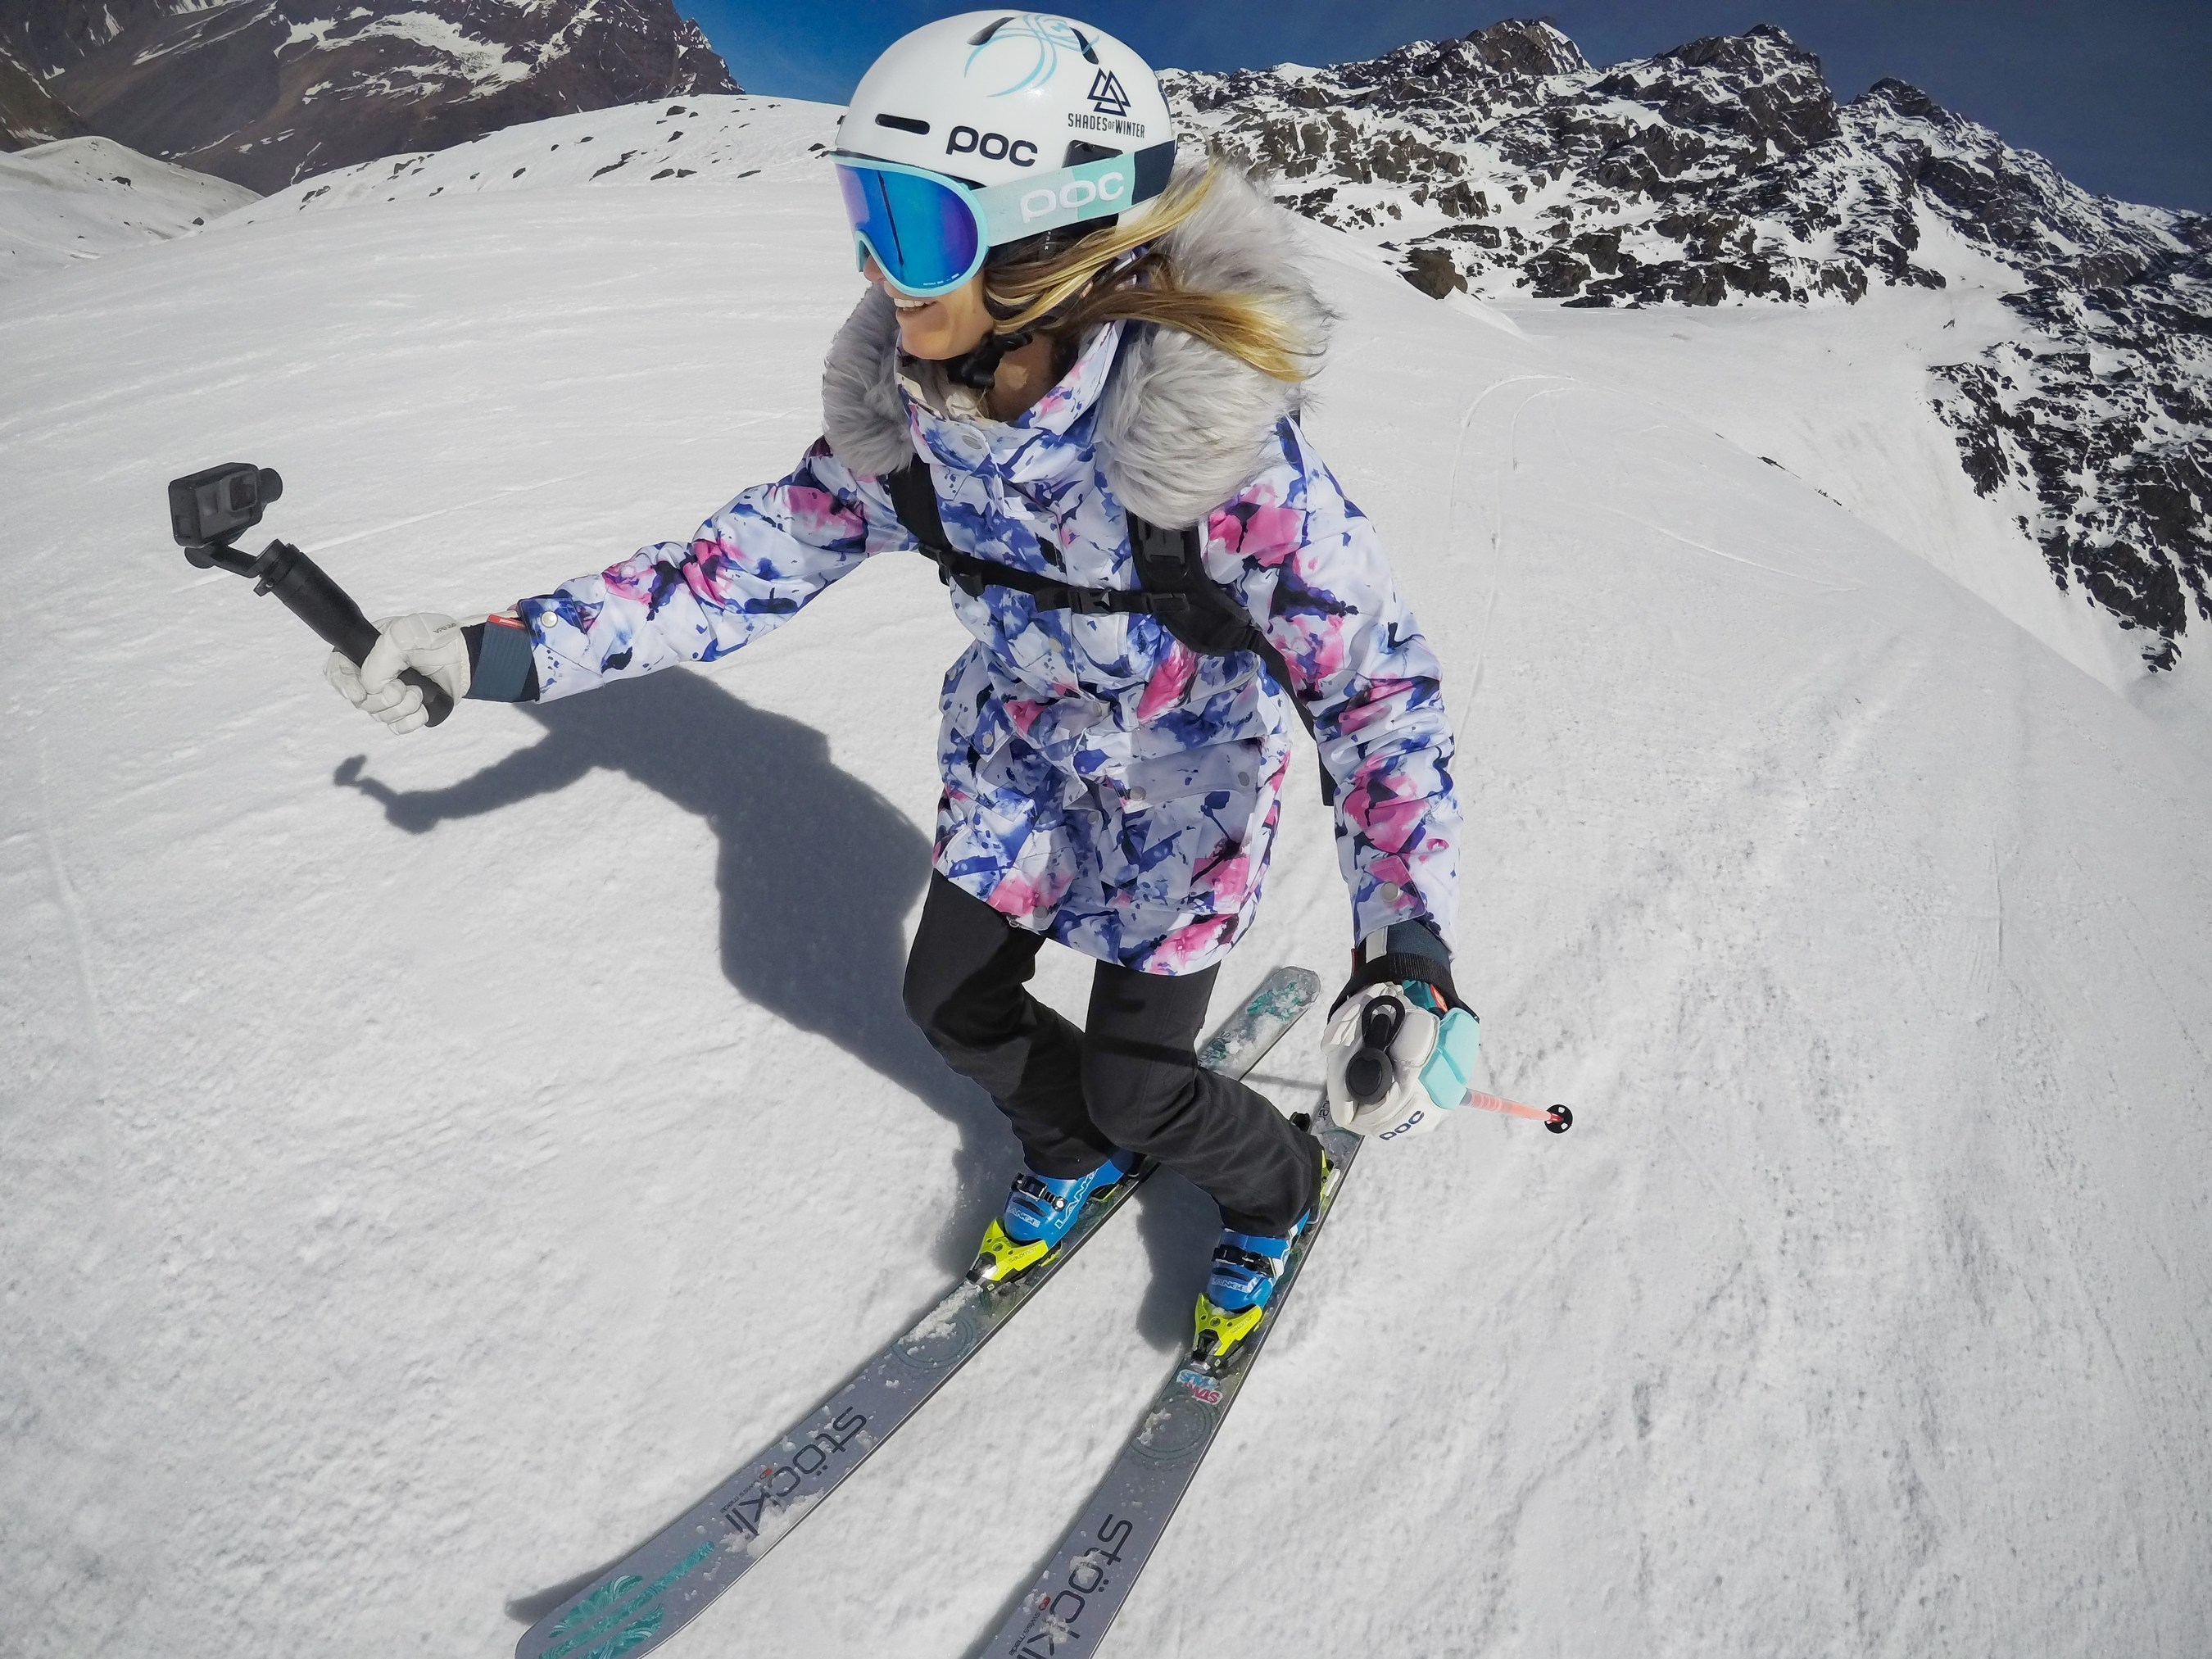 The GoPro Karma Grip in Action